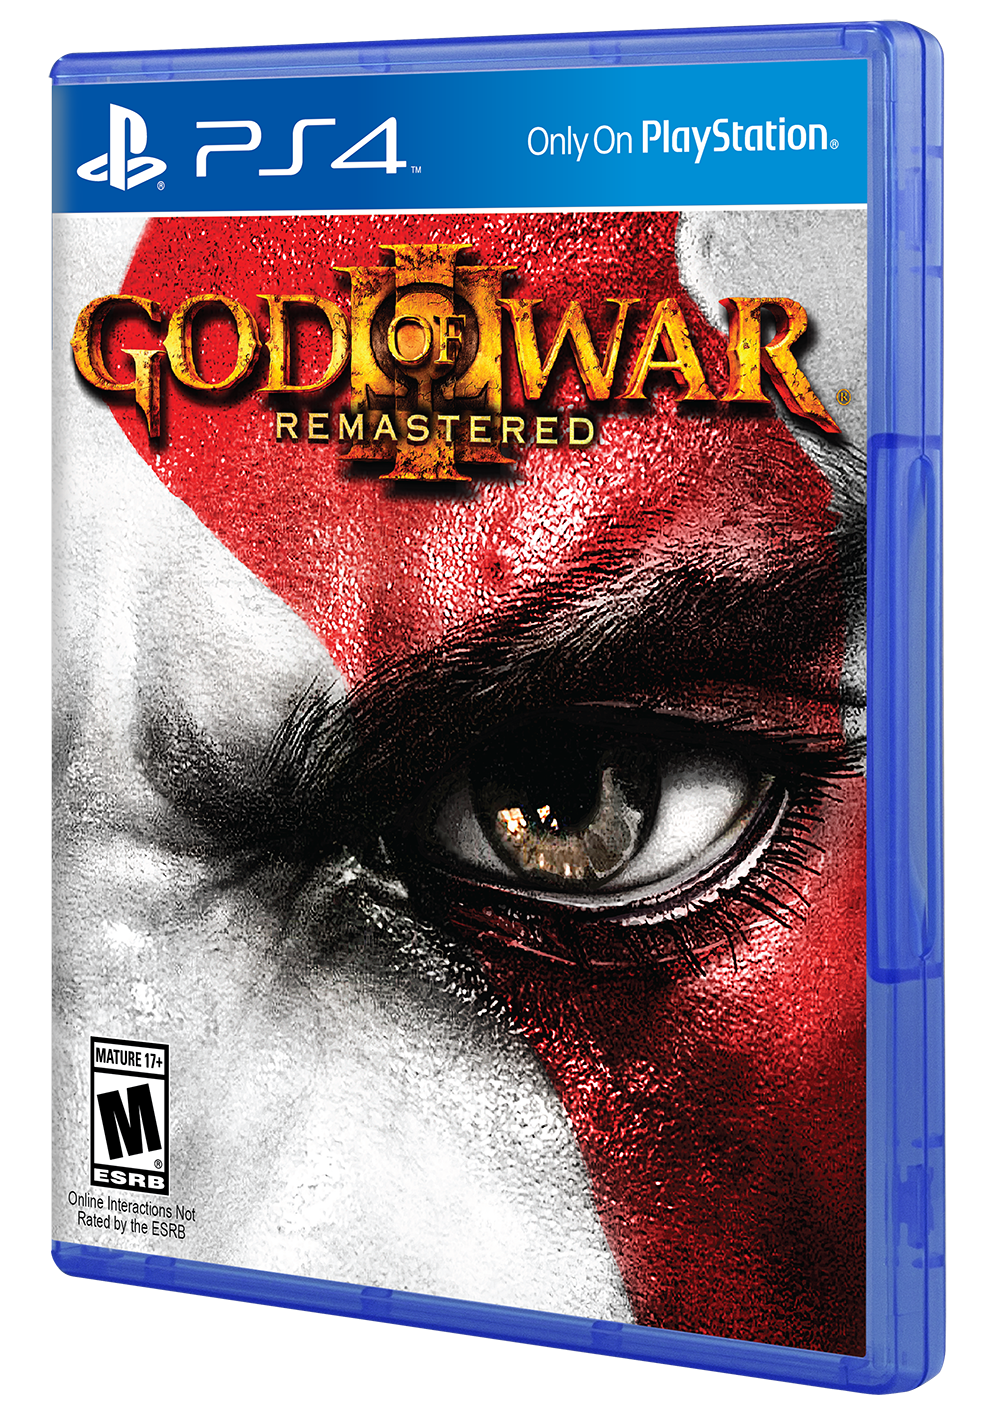 JUEGO PS4 GOD OF WAR 3 REMASTERIZADO